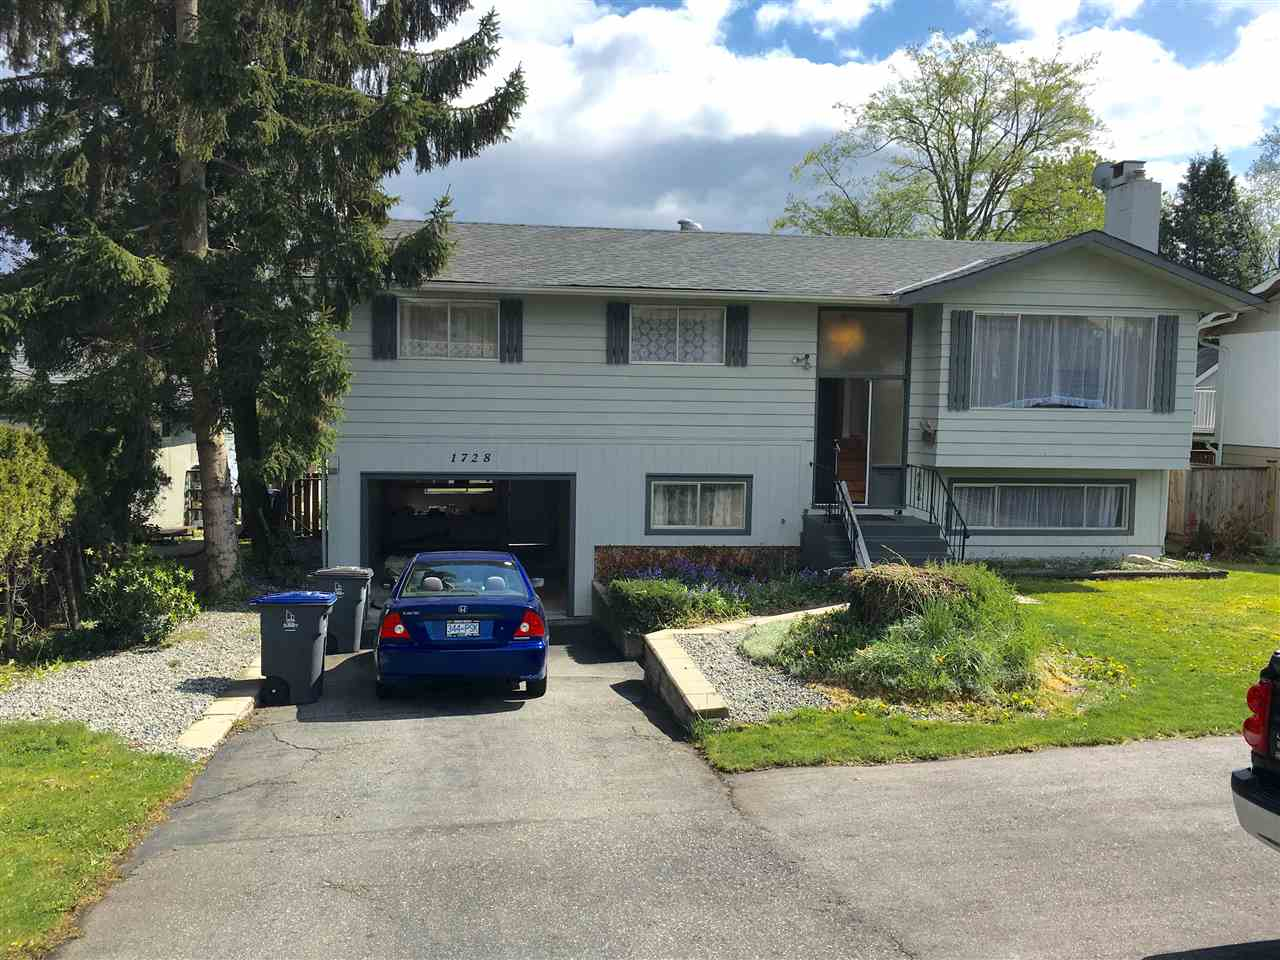 Detached at 1728 156 STREET, South Surrey White Rock, British Columbia. Image 1